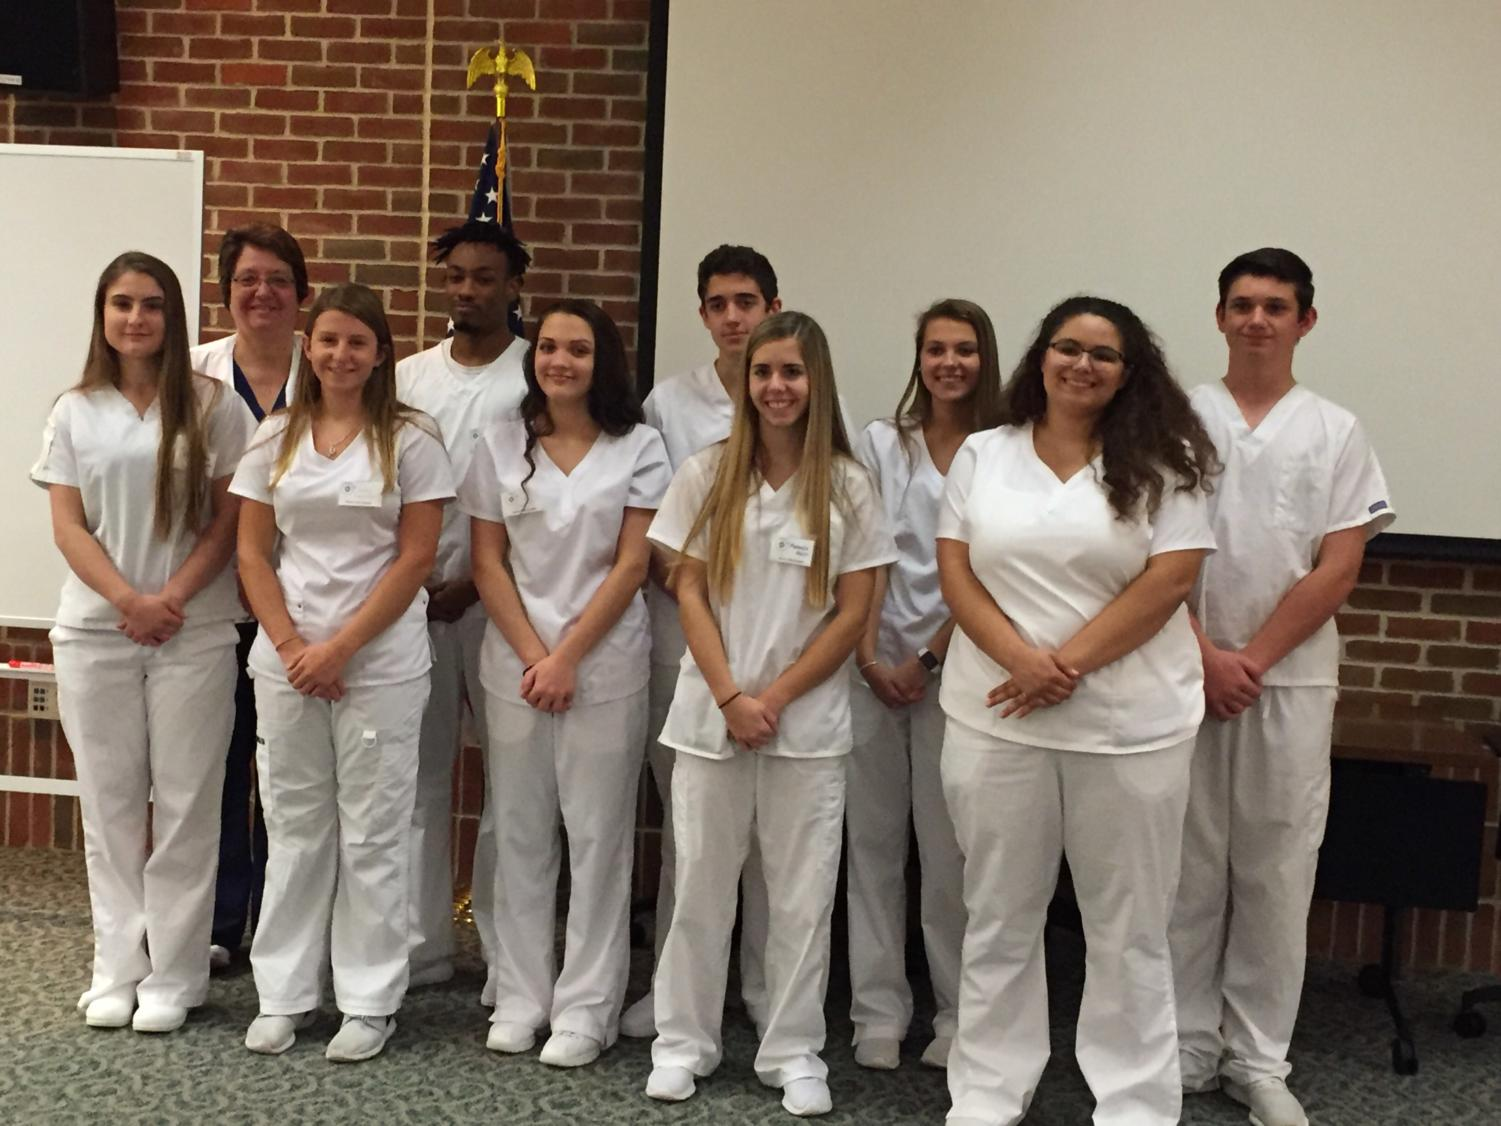 Students from Carlisle, Big Spring, and West Perry Area School Districts graduated from the Certified Nurse Aide (CNA) recognition in a ceremony held at the Carlisle High School.  The following Carlisle students were among the Fall 2018 graduates:  Sydney Overmiller, Jamal Spells, Casey Casteel,  Max Bethtel, Armela Ferhatovic